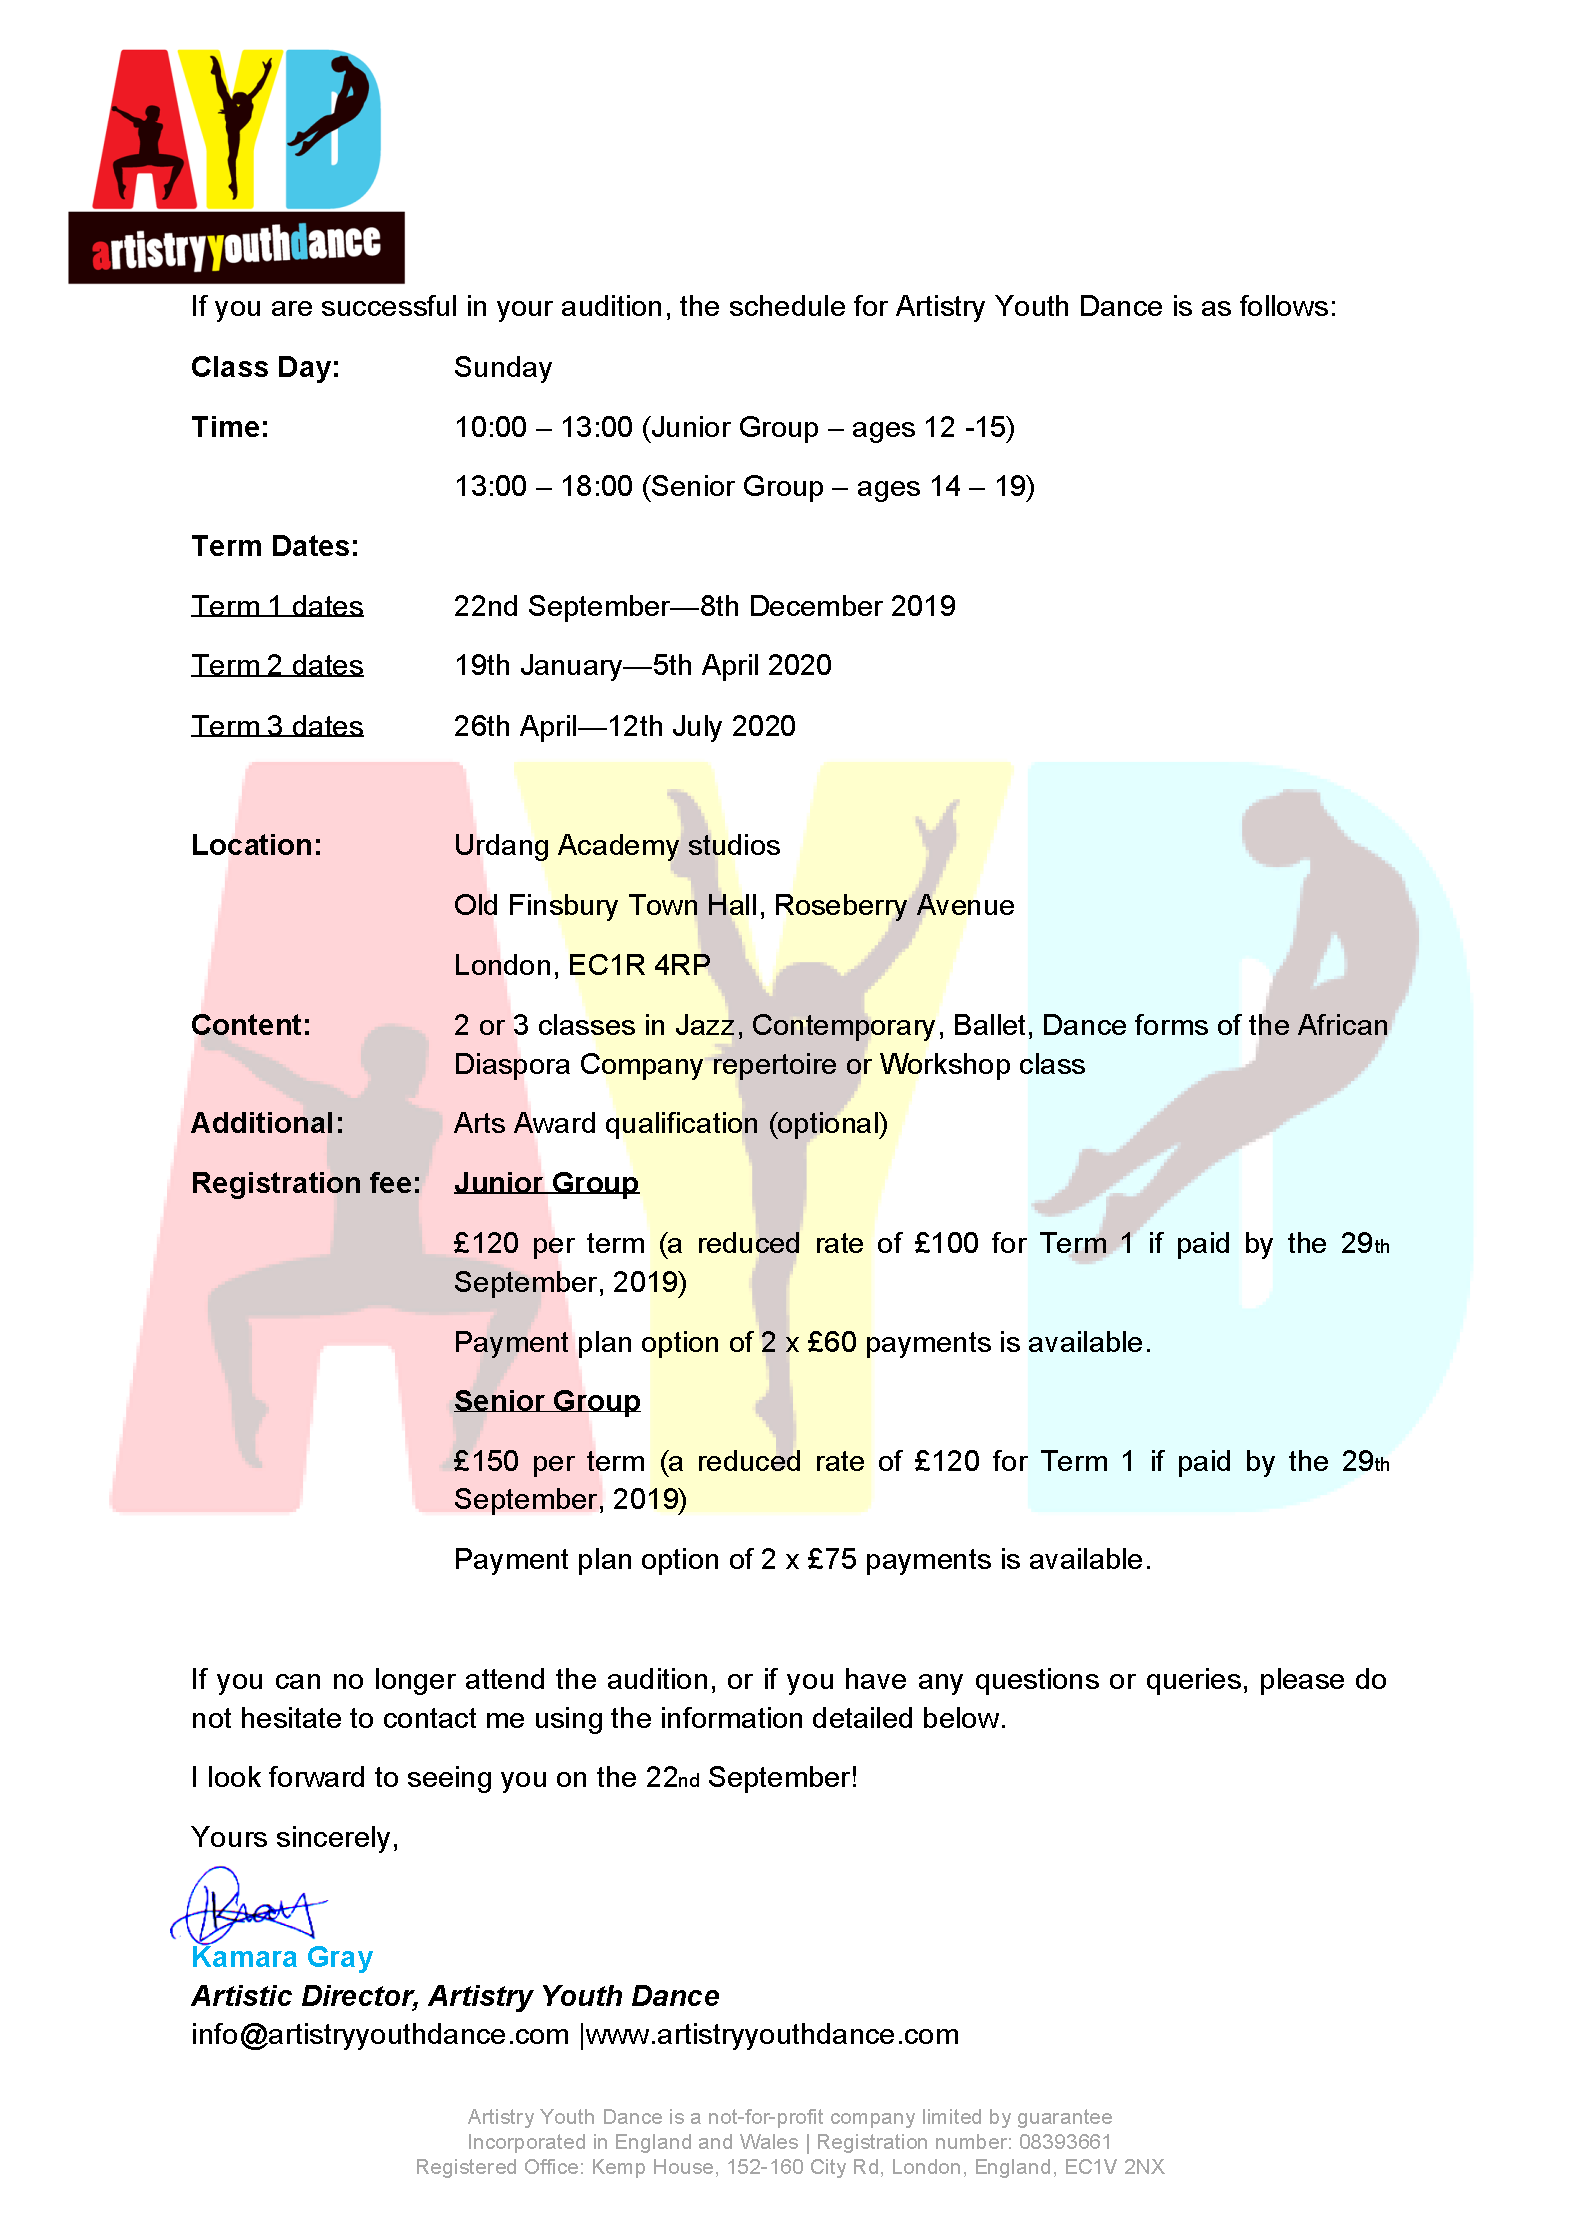 Artistry Youth Dance Audition Information - Sept 2019_Page_2.png